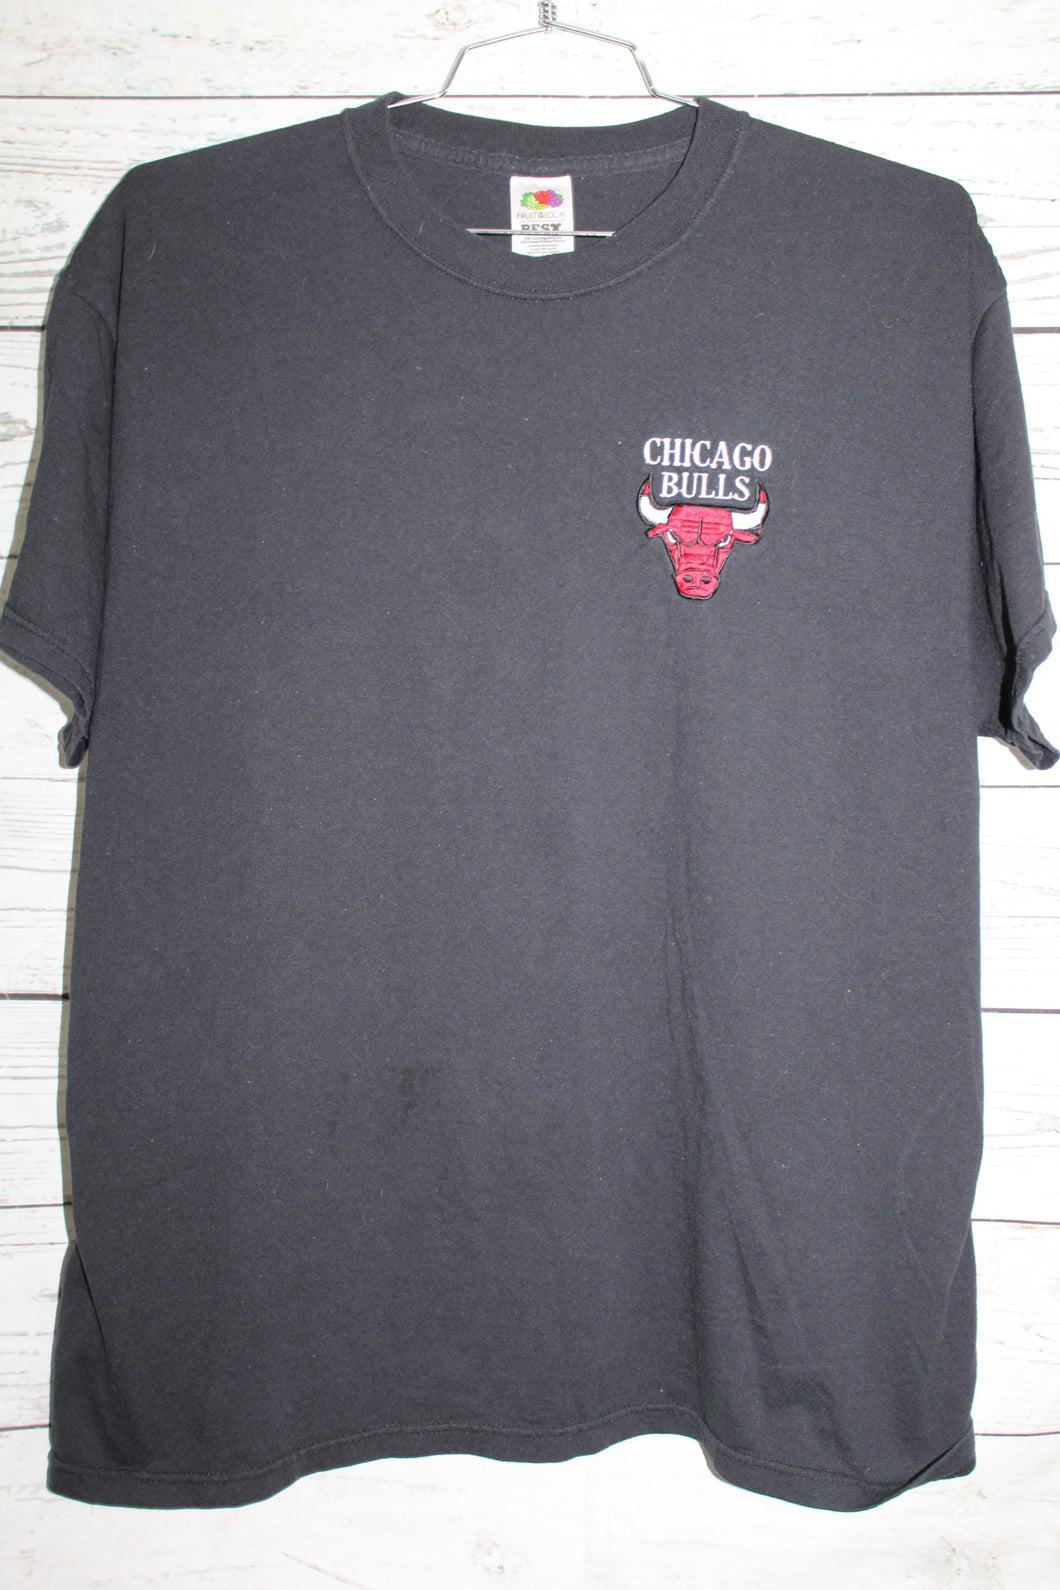 Chicago Bulls Sewn Embroidered Vintage T-shirt